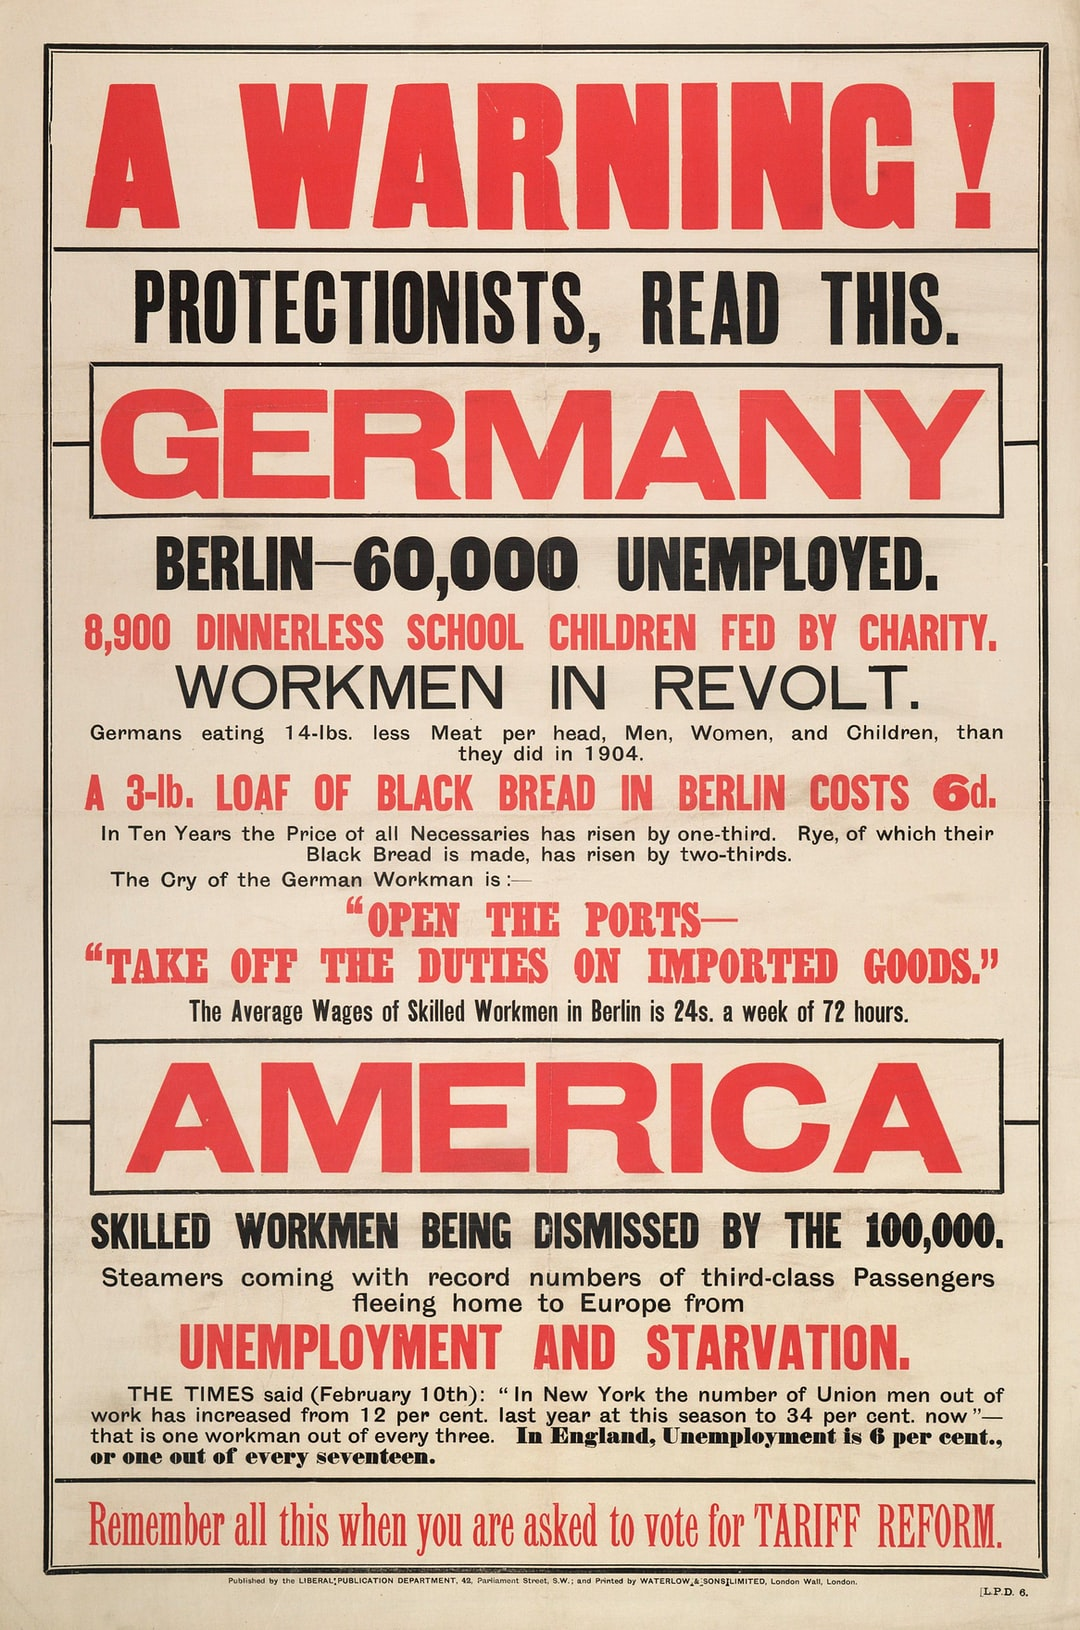 """""""A Warning! Protectionists Read This..."""" Full text poster in black and red ink on white warning against Tariff Reform. Unemployment in Europe (especially Germany) and the USA are cited to illustrate the dangers of Tariff Reform."""